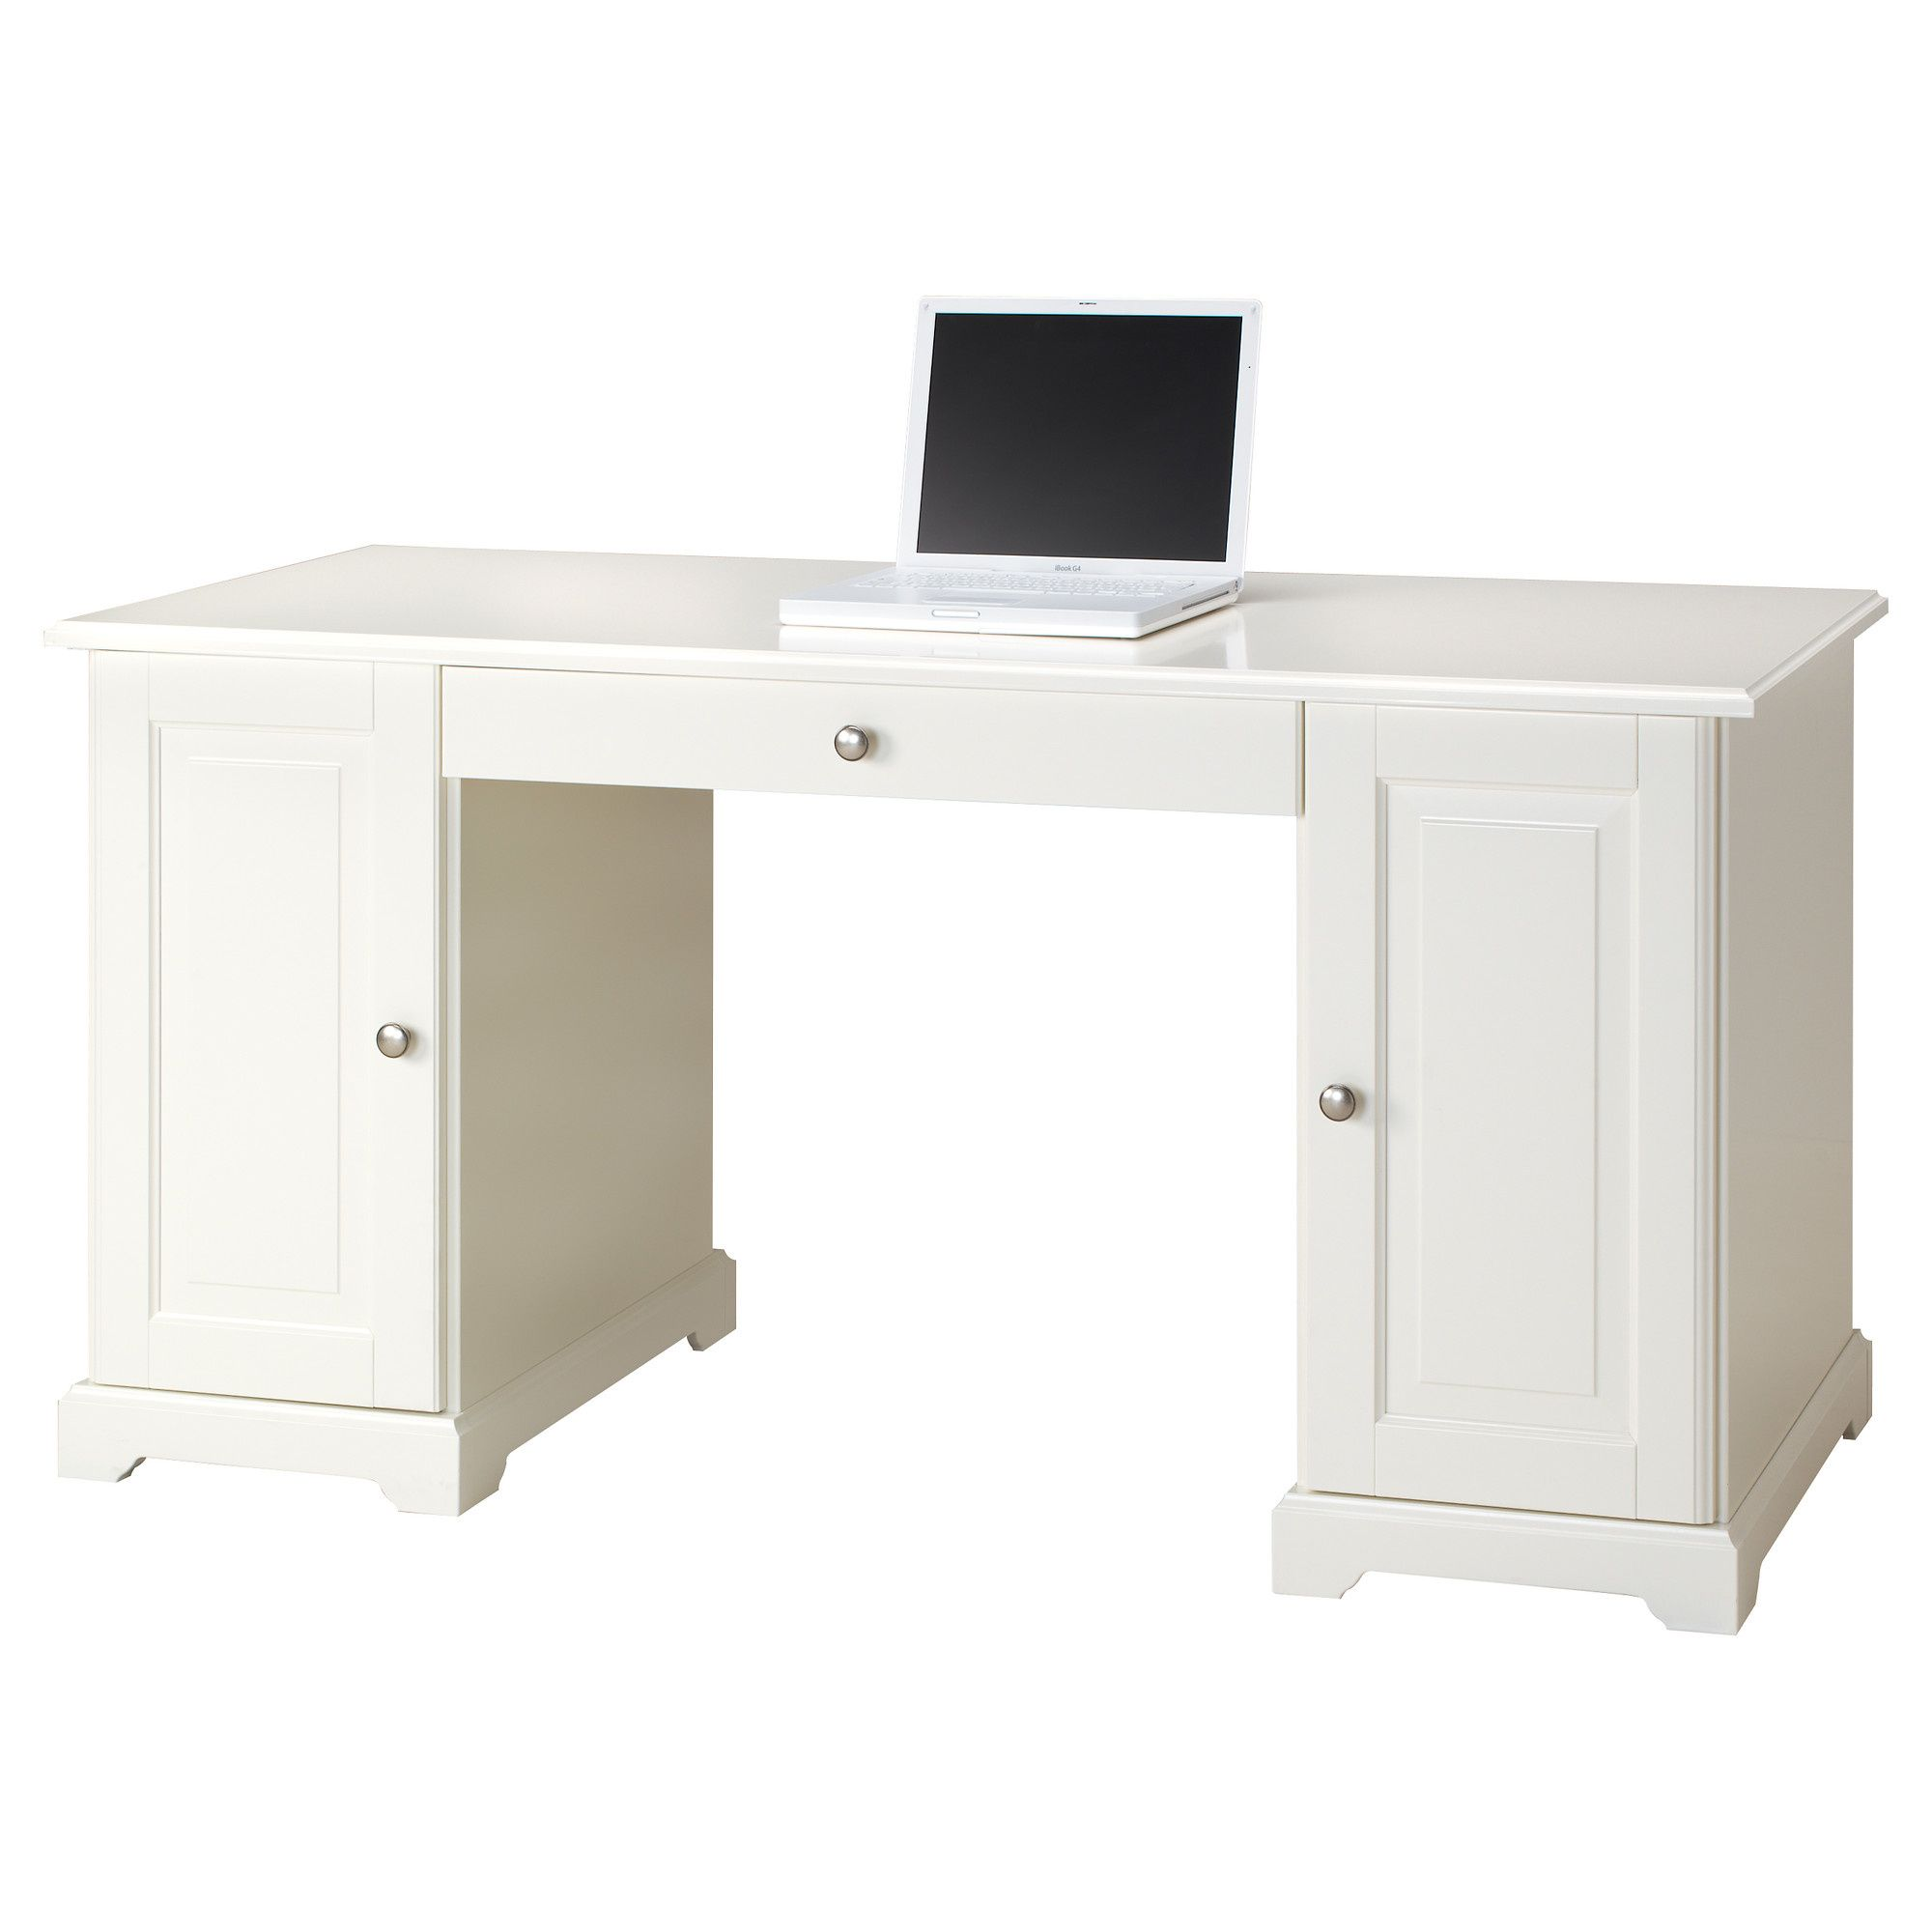 Ikea Us Furniture And Home Furnishings Ikea Ps 2014 Desks For Small Spaces Ikea Ps